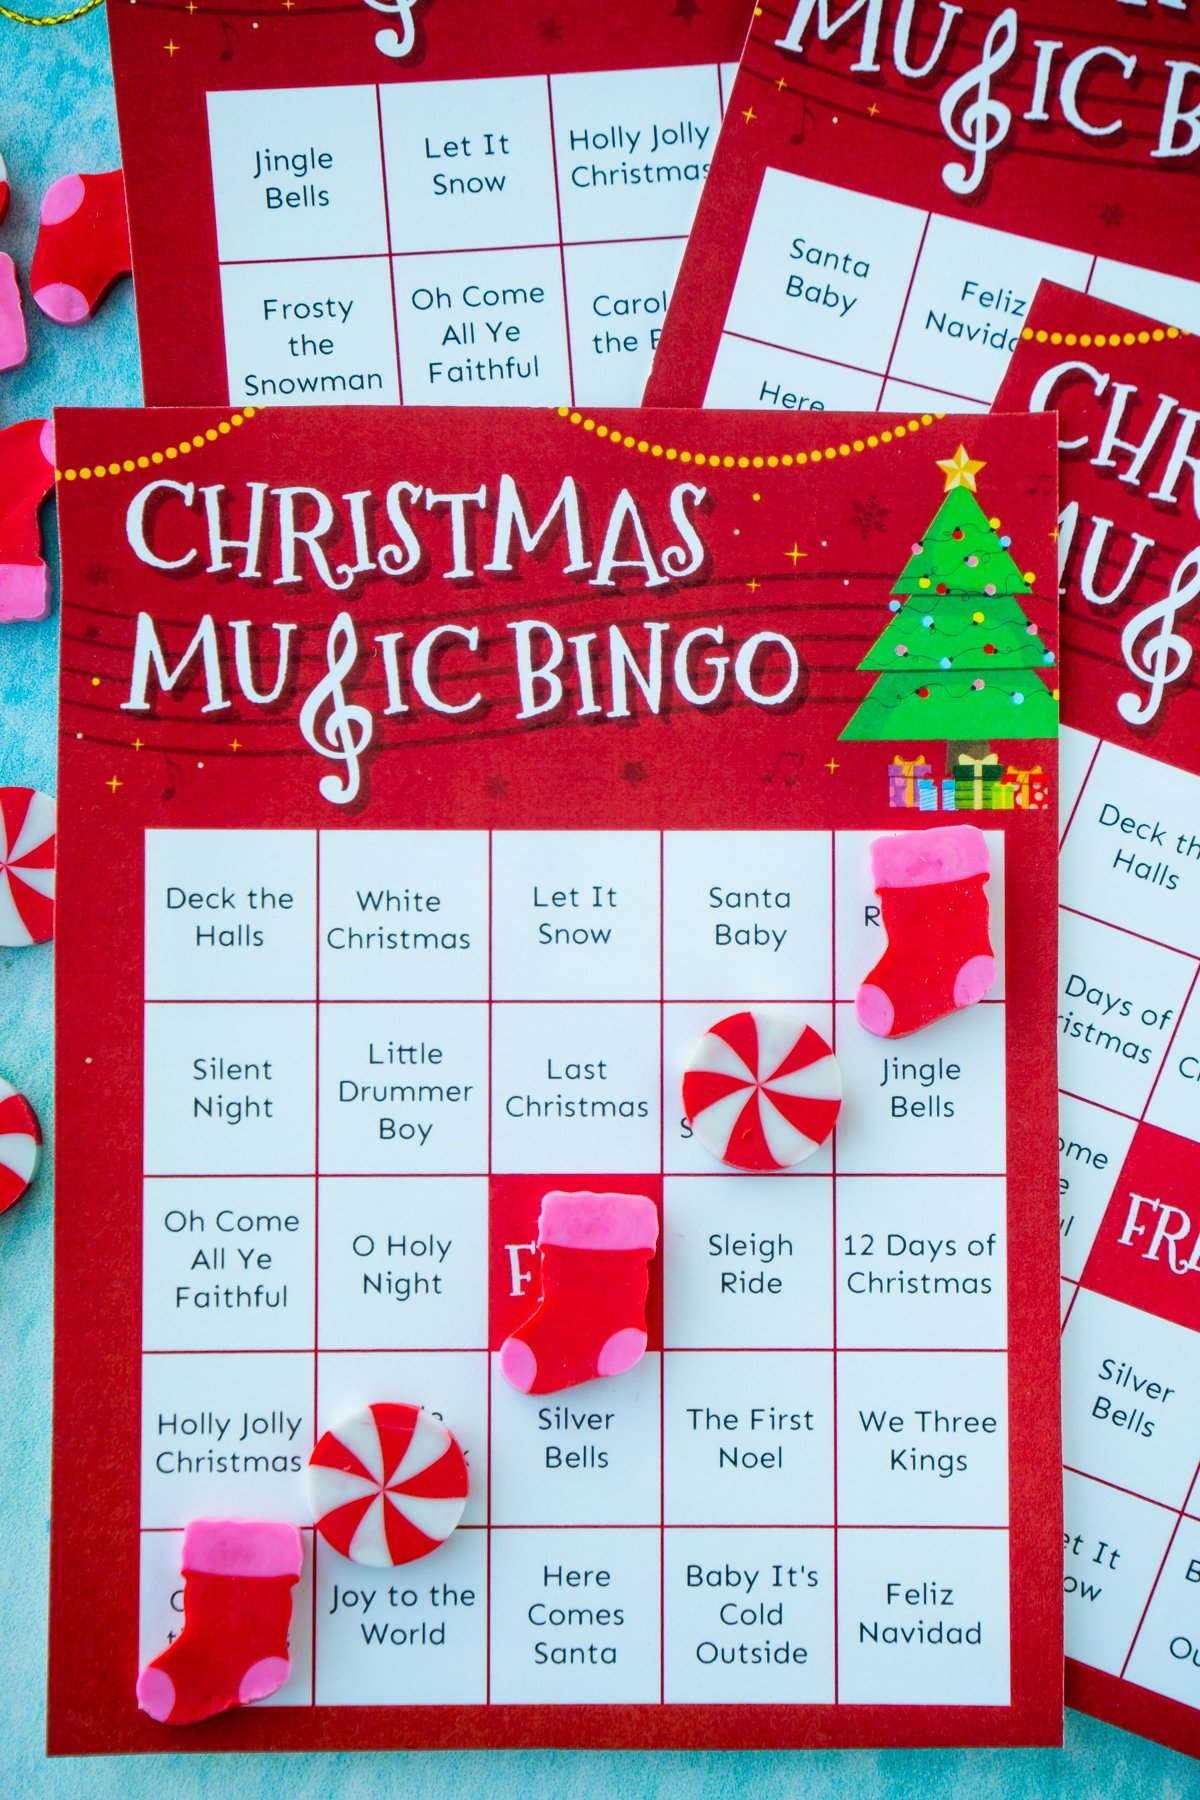 Christmas music bingo card with a bingo made out of Christmas erasers